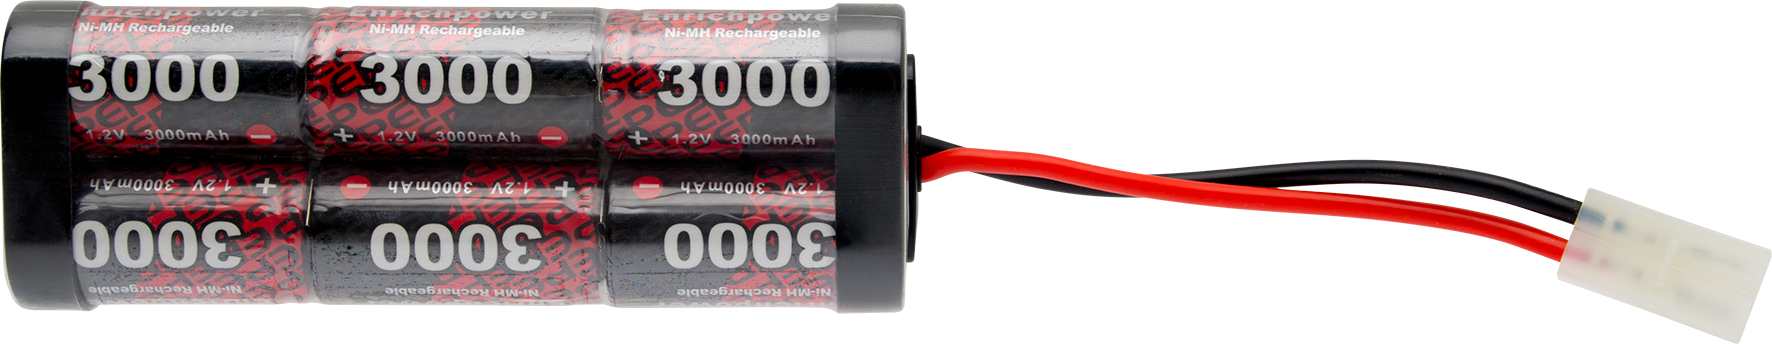 X-Power 7,2V 3000 mAh NiMH